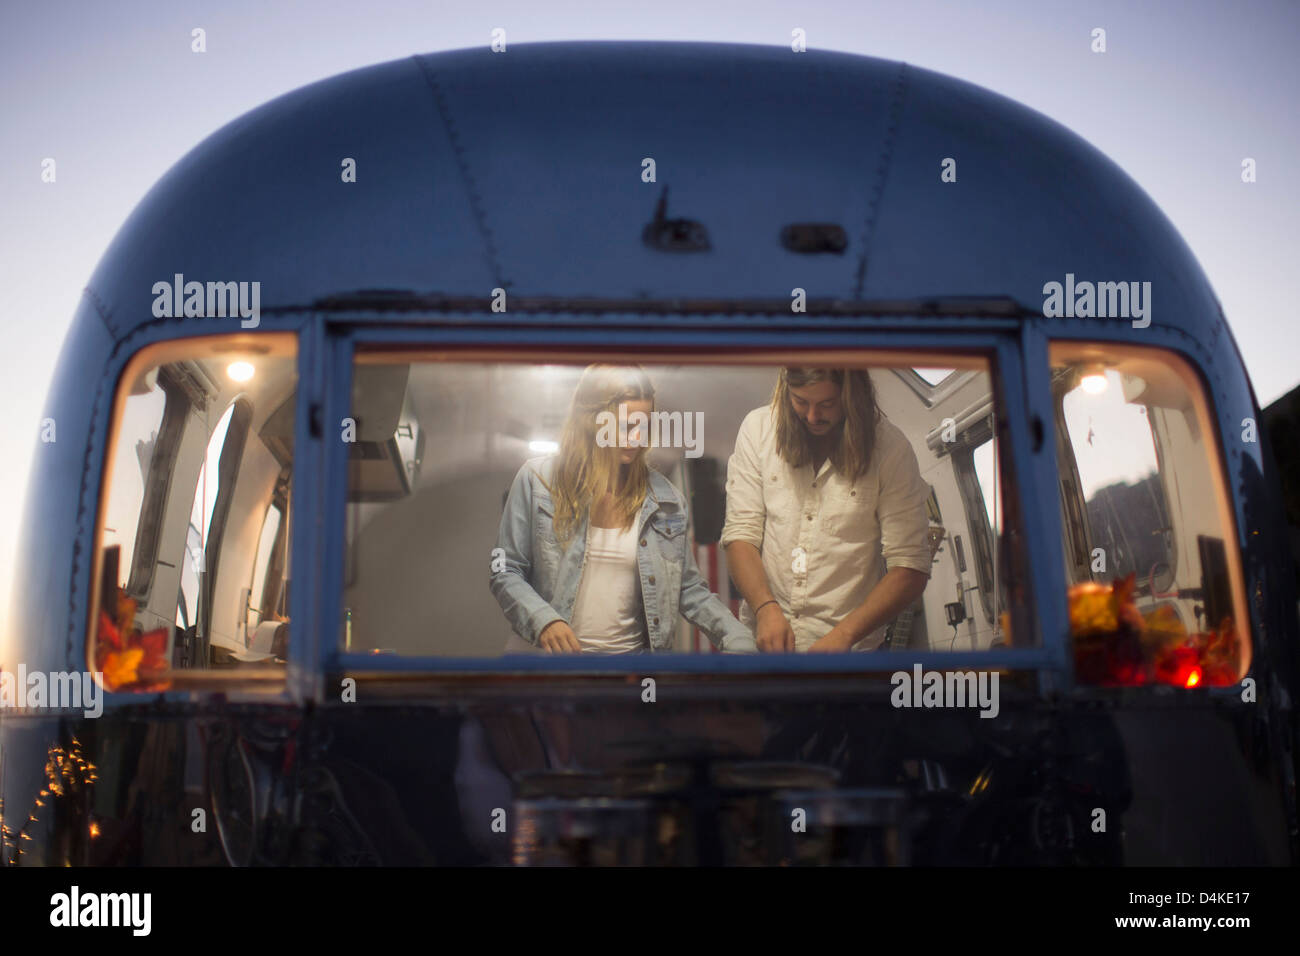 Couple cooking together in trailer - Stock Image